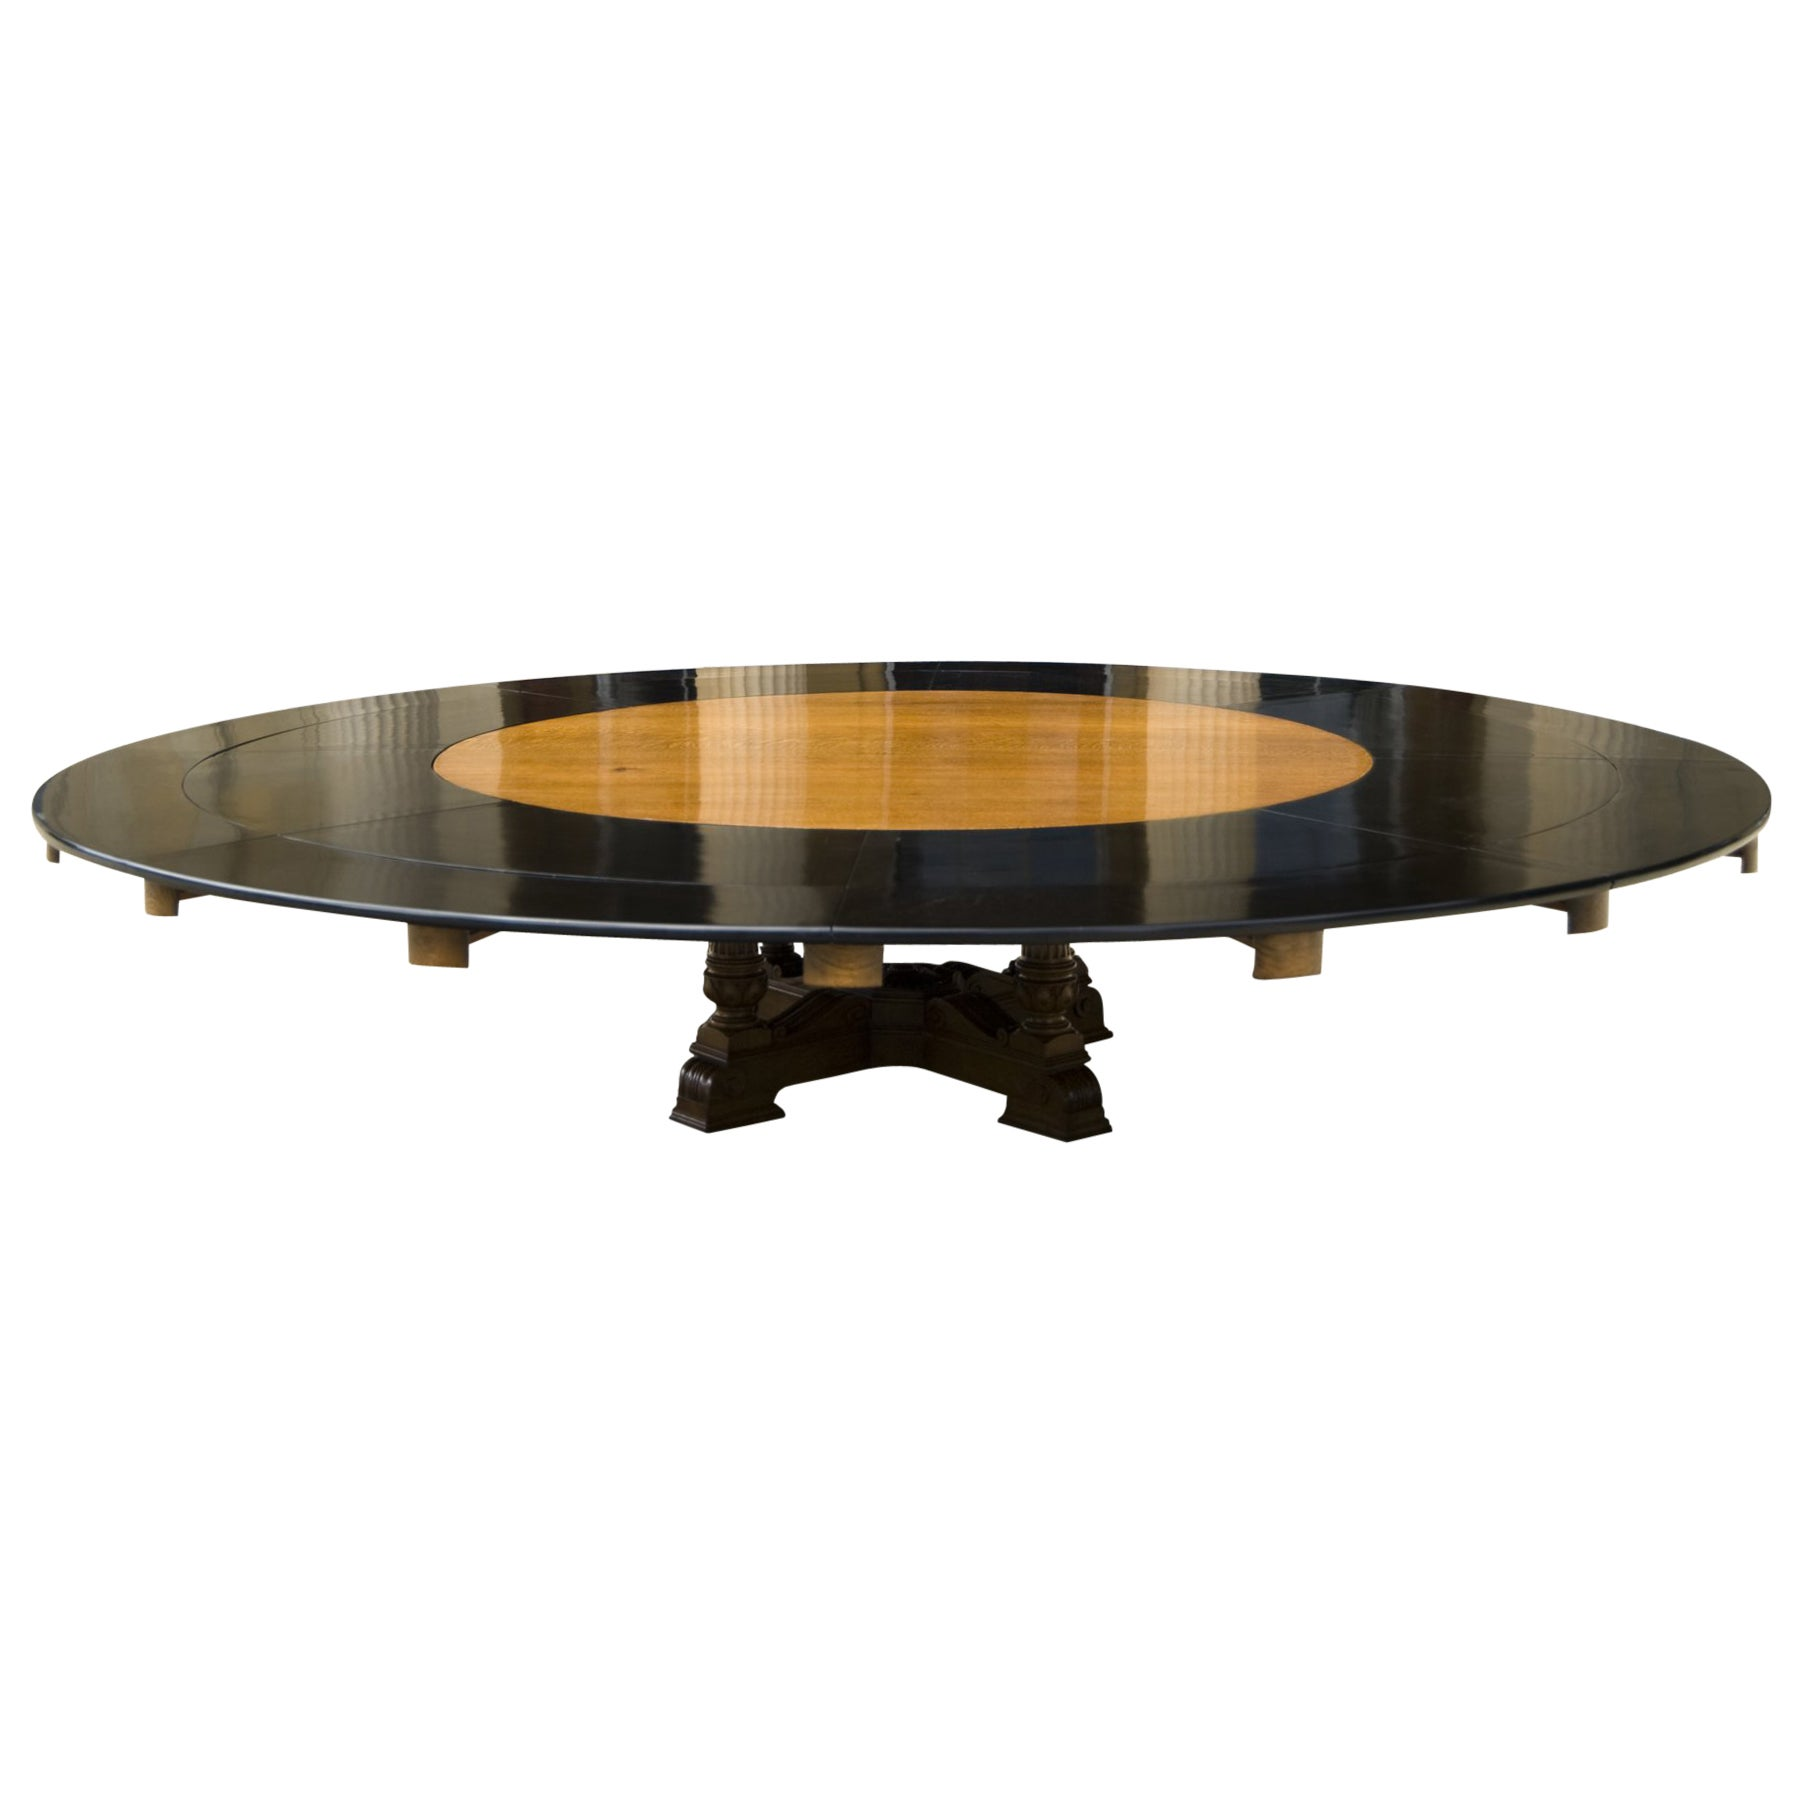 Round Oak Dining Table Massive Thirteen Foot Wide Round Oak Antique Dining Table To Seat Twenty People